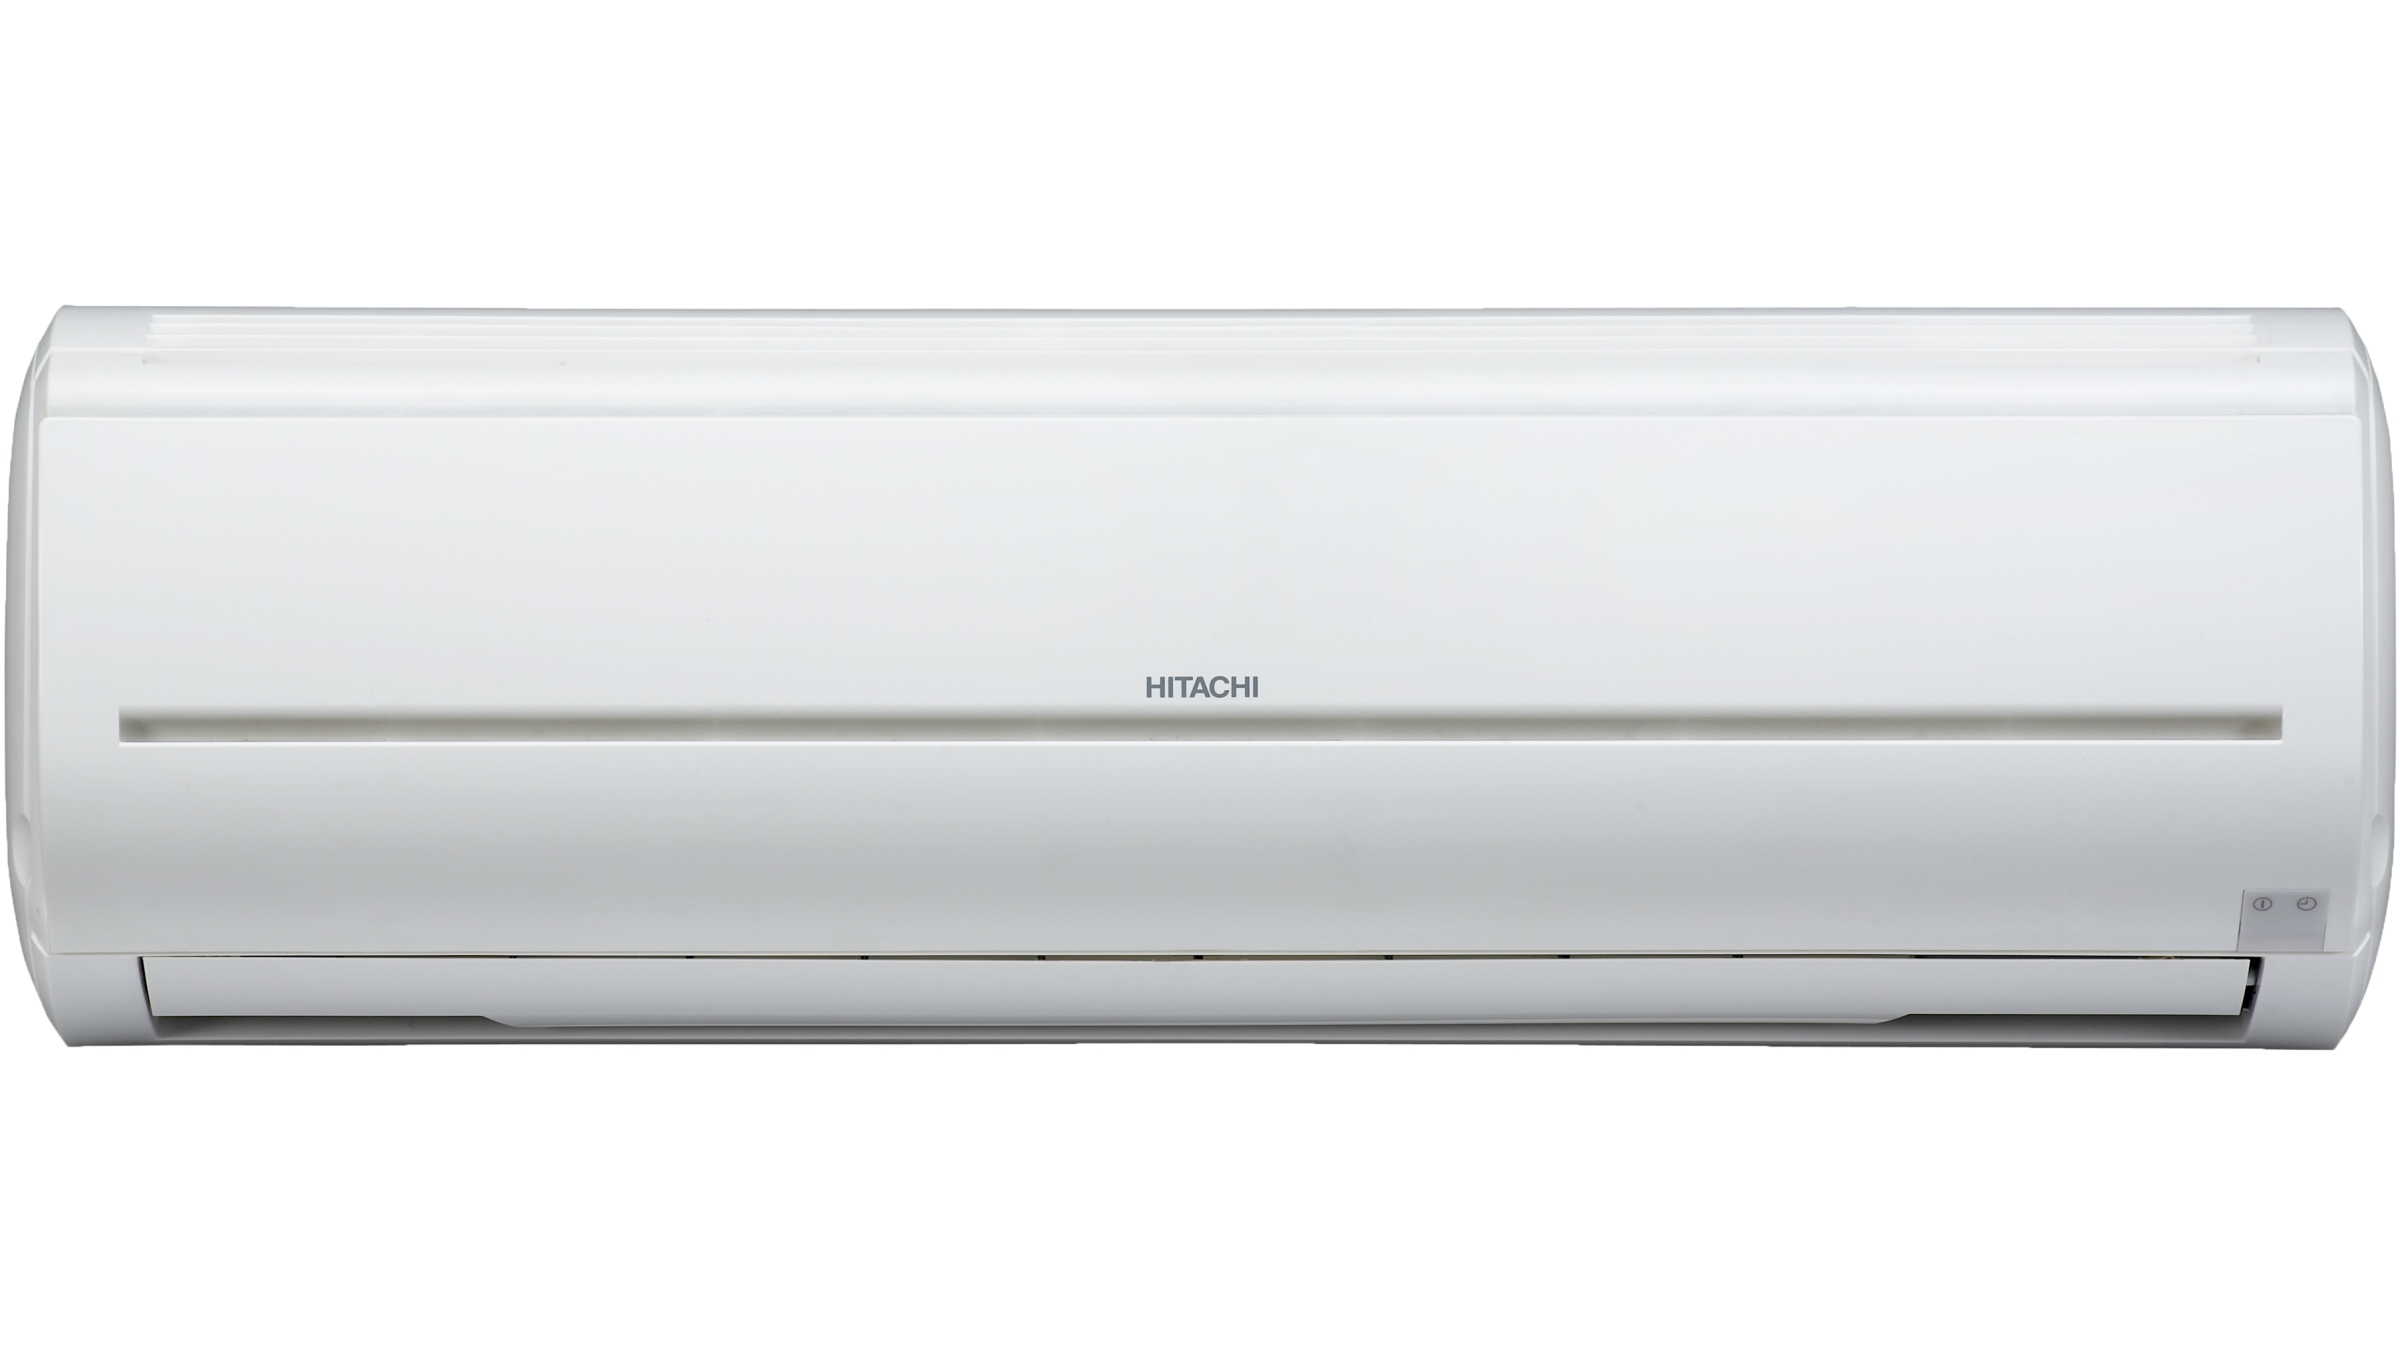 Hitachi 2.7kW Split System Air Conditioner Harvey Norman Malaysia #60656B